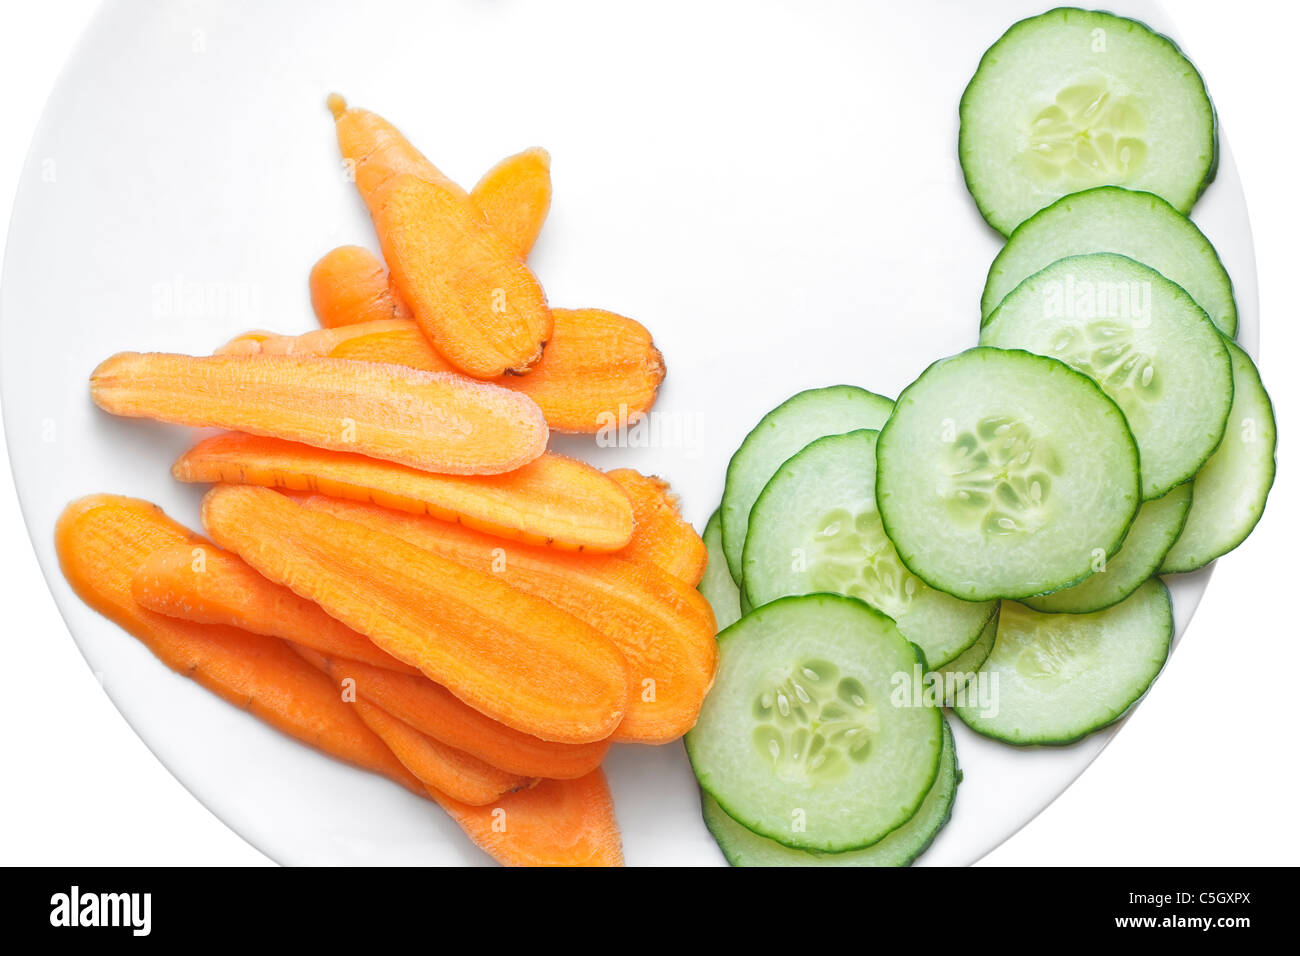 Fresh carrot and cucumber slices , arranged in a white plate. - Stock Image